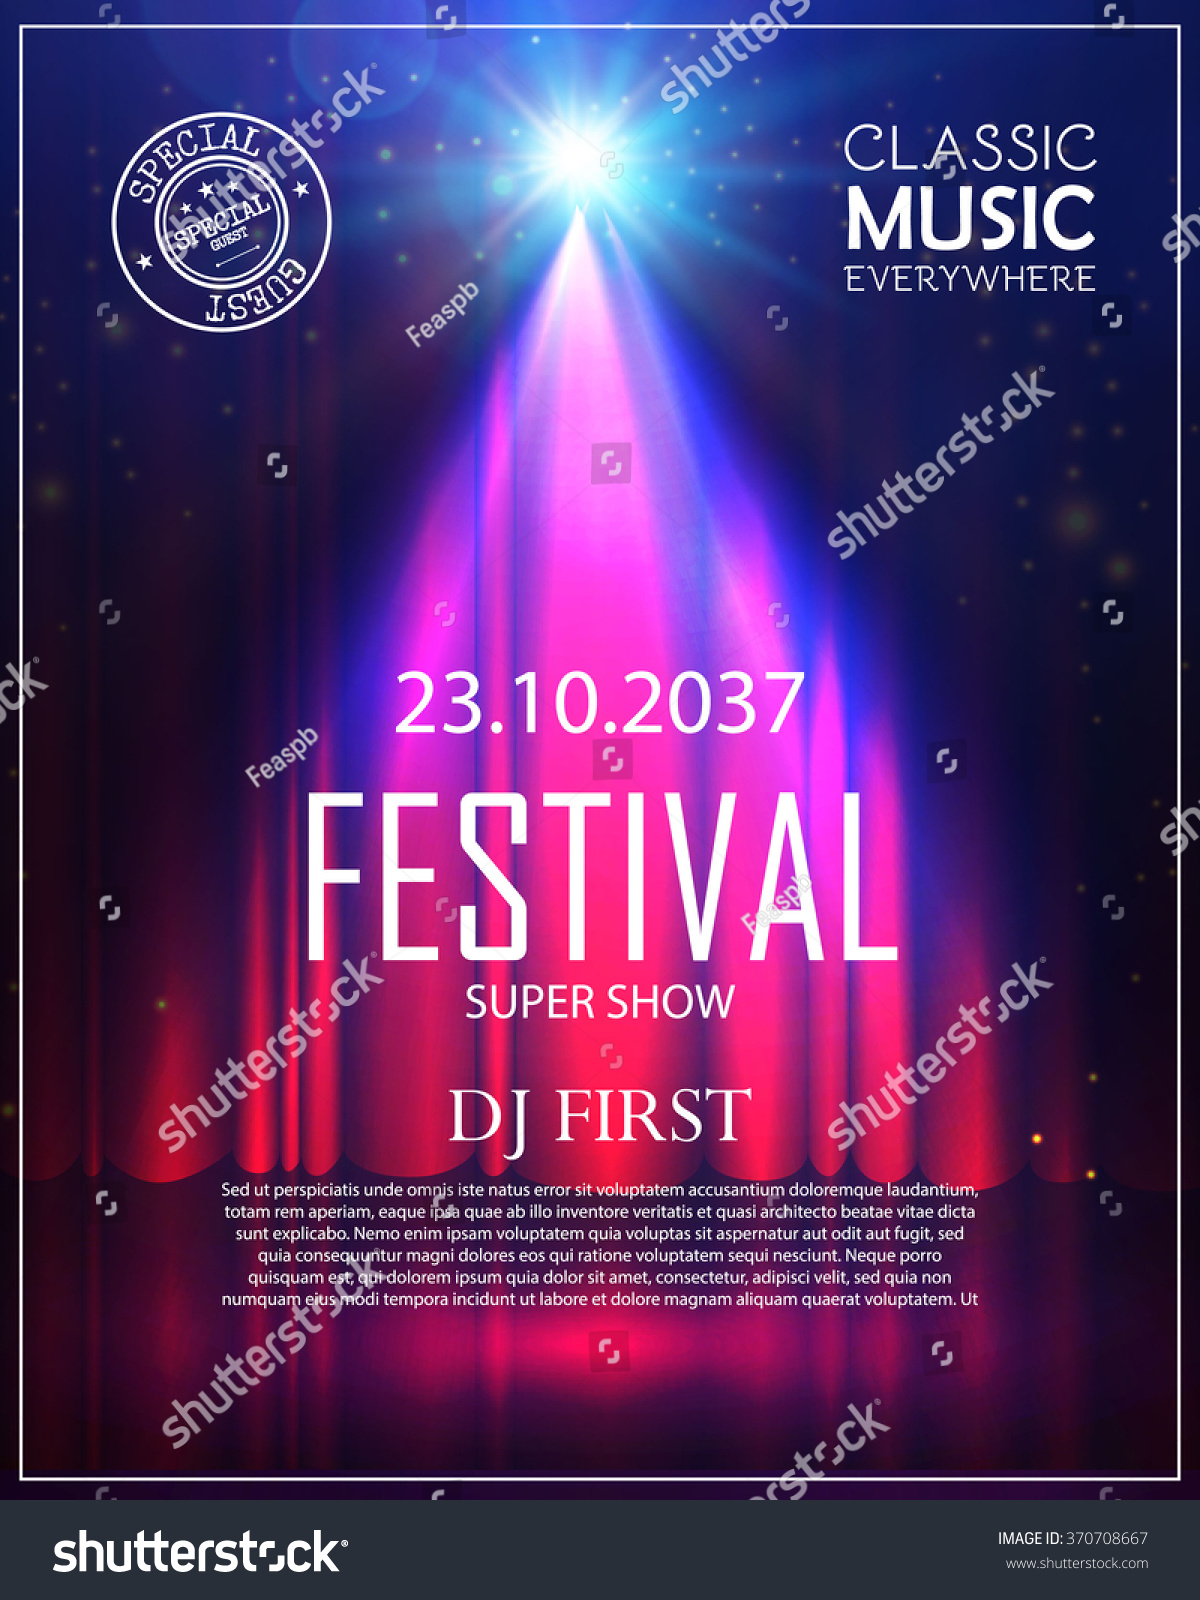 Theater curtains download free vector art stock graphics amp images -  Vectors Illustrations Footage Music Festival Poster With Spotlight Concert Party Theater Dance Show Design